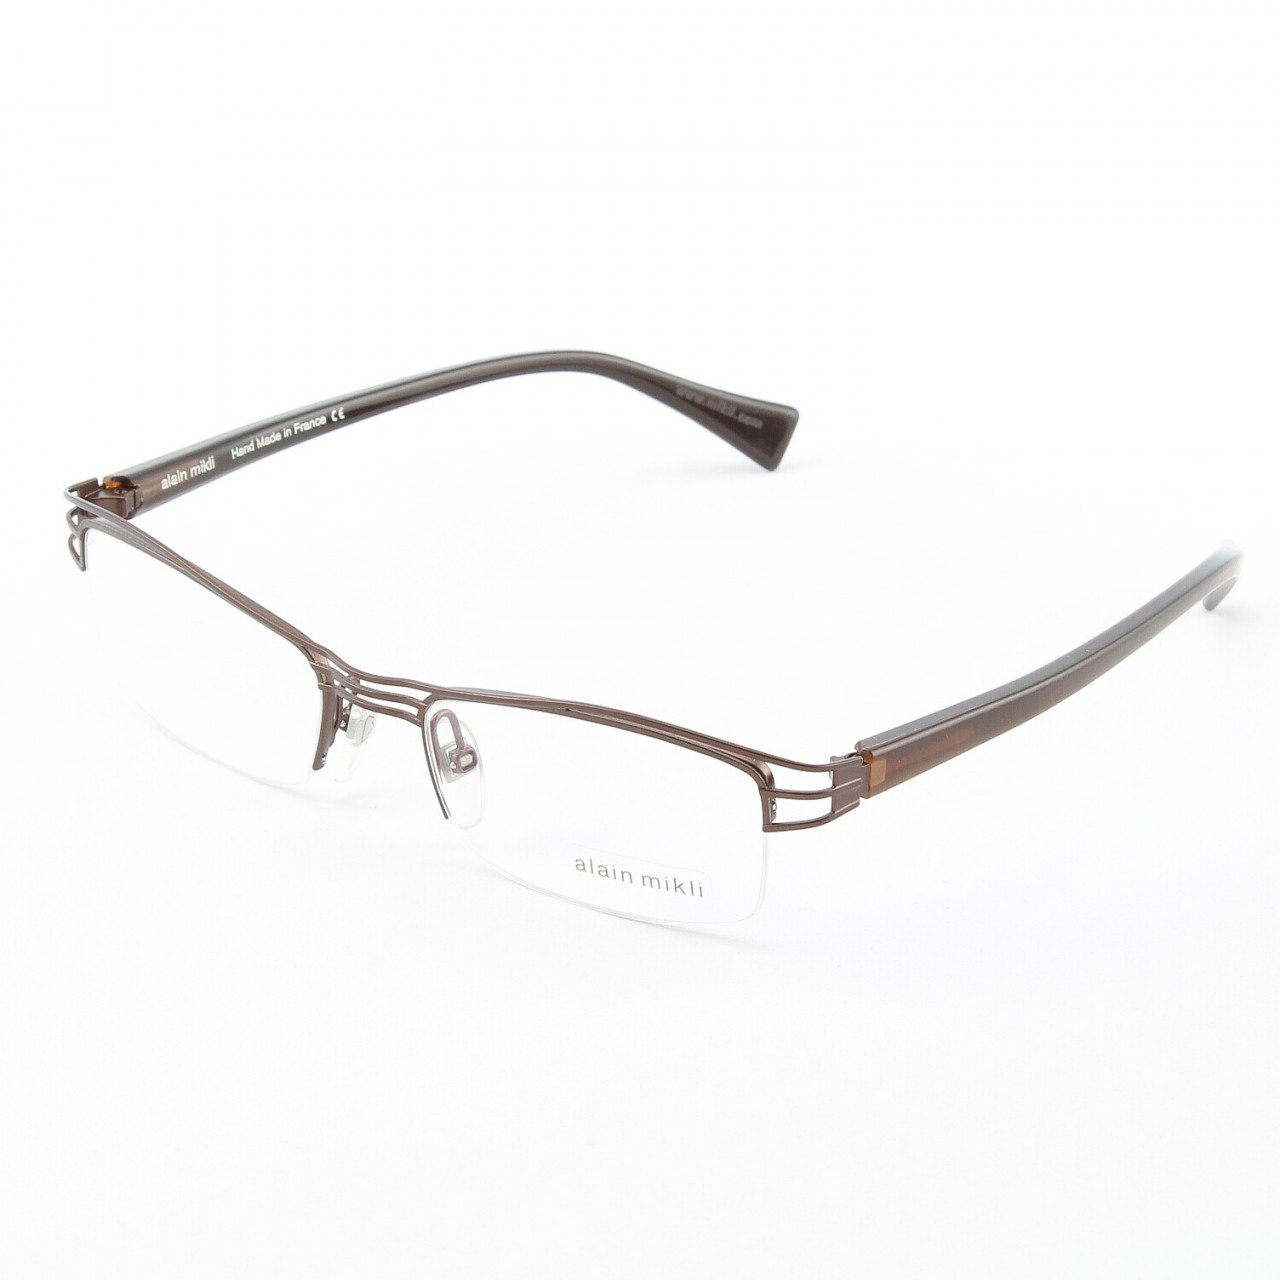 Alain Mikli Eyeglasses AL1111 Col. 2 Copper with Chocolate Brown Temples